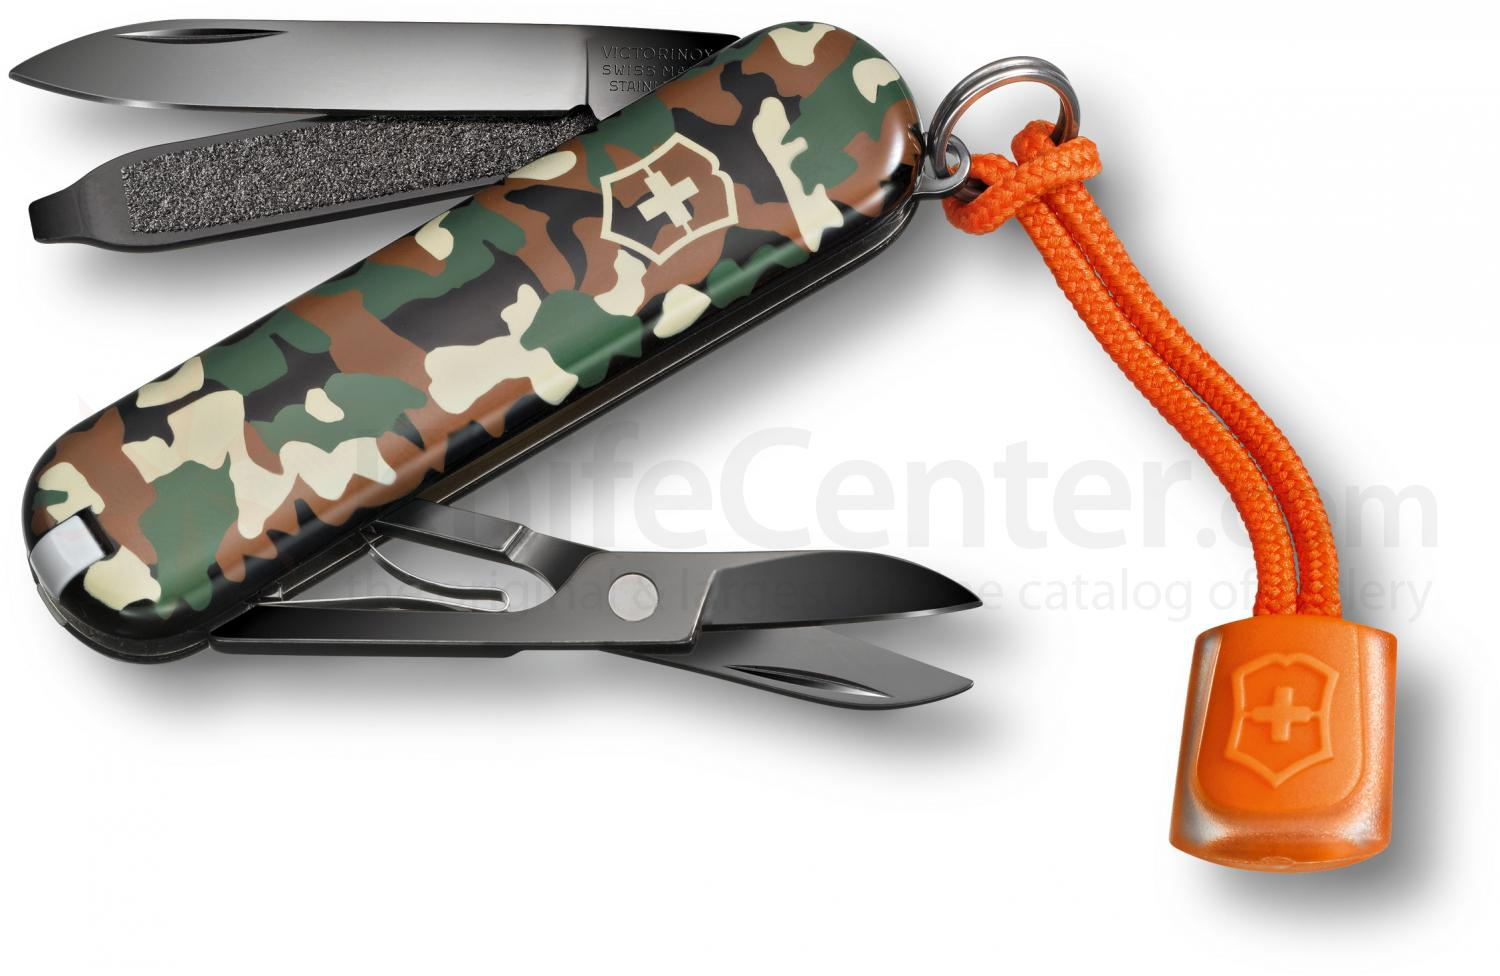 Victorinox Swiss Army Black Ice Classic SD Multi-Tool, 2-1/4 inch Camouflage Handles, Limited Edition (0.6223.94L12)